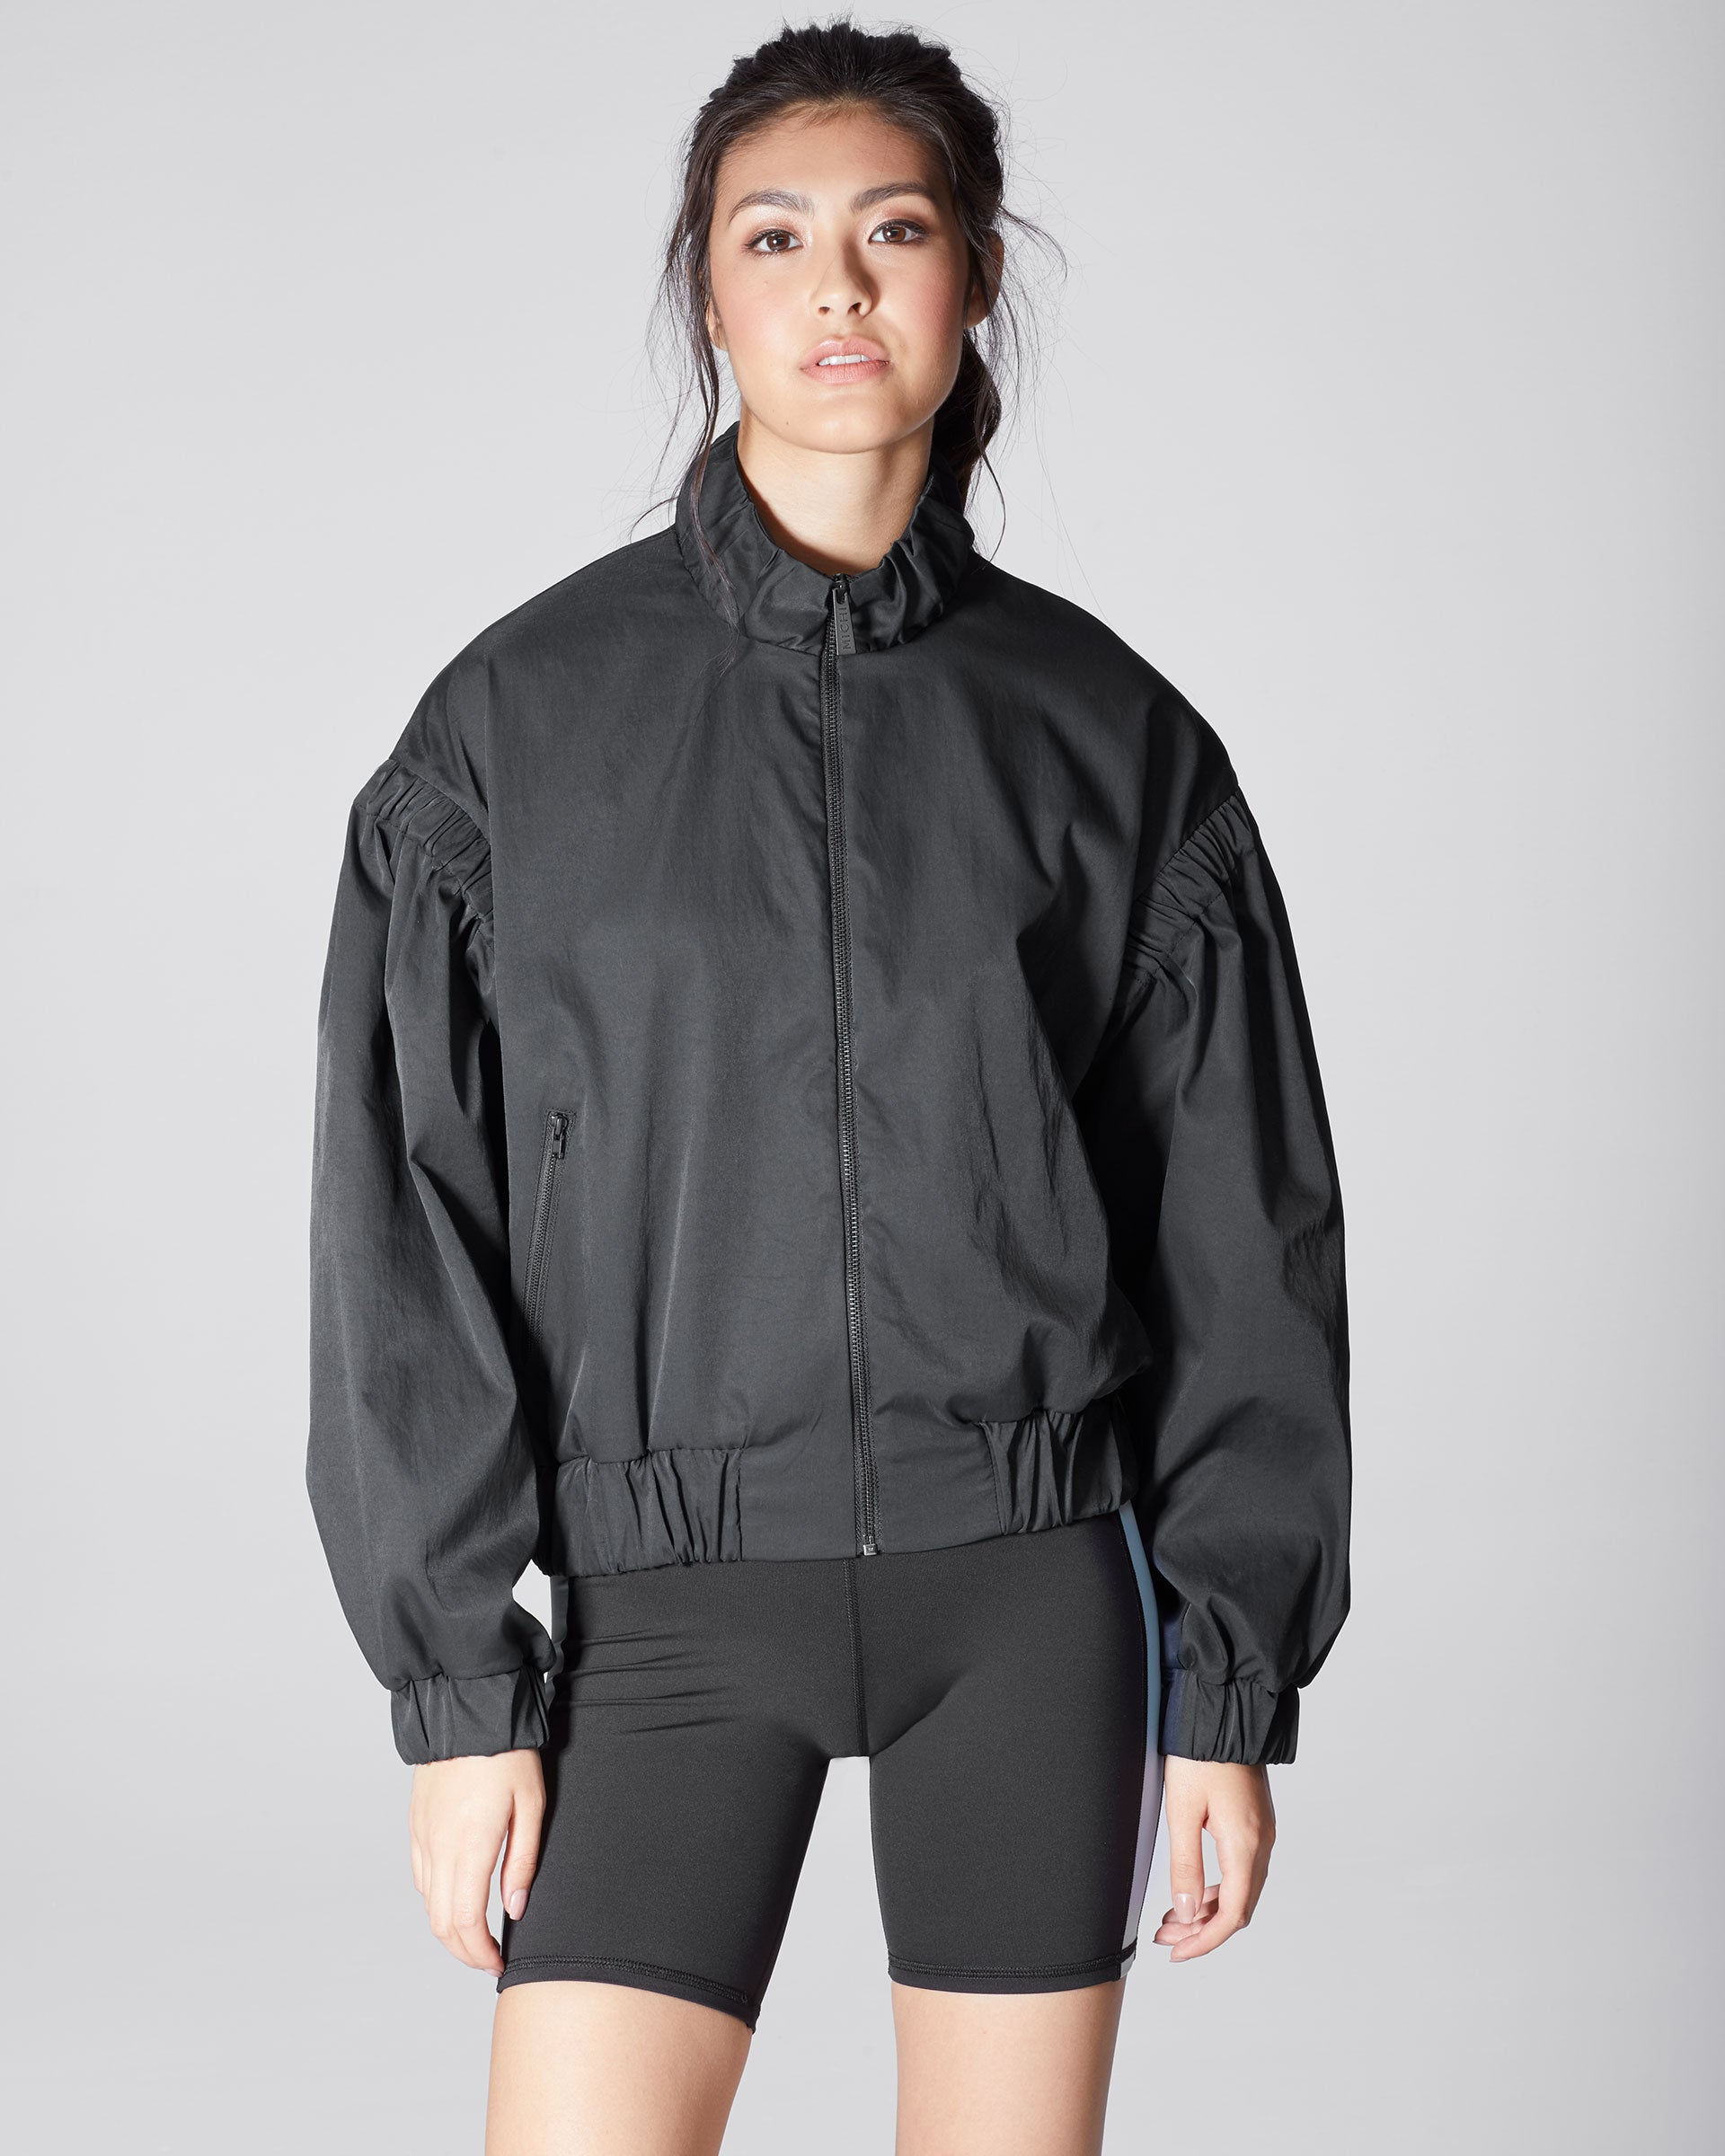 werl-jacket-black